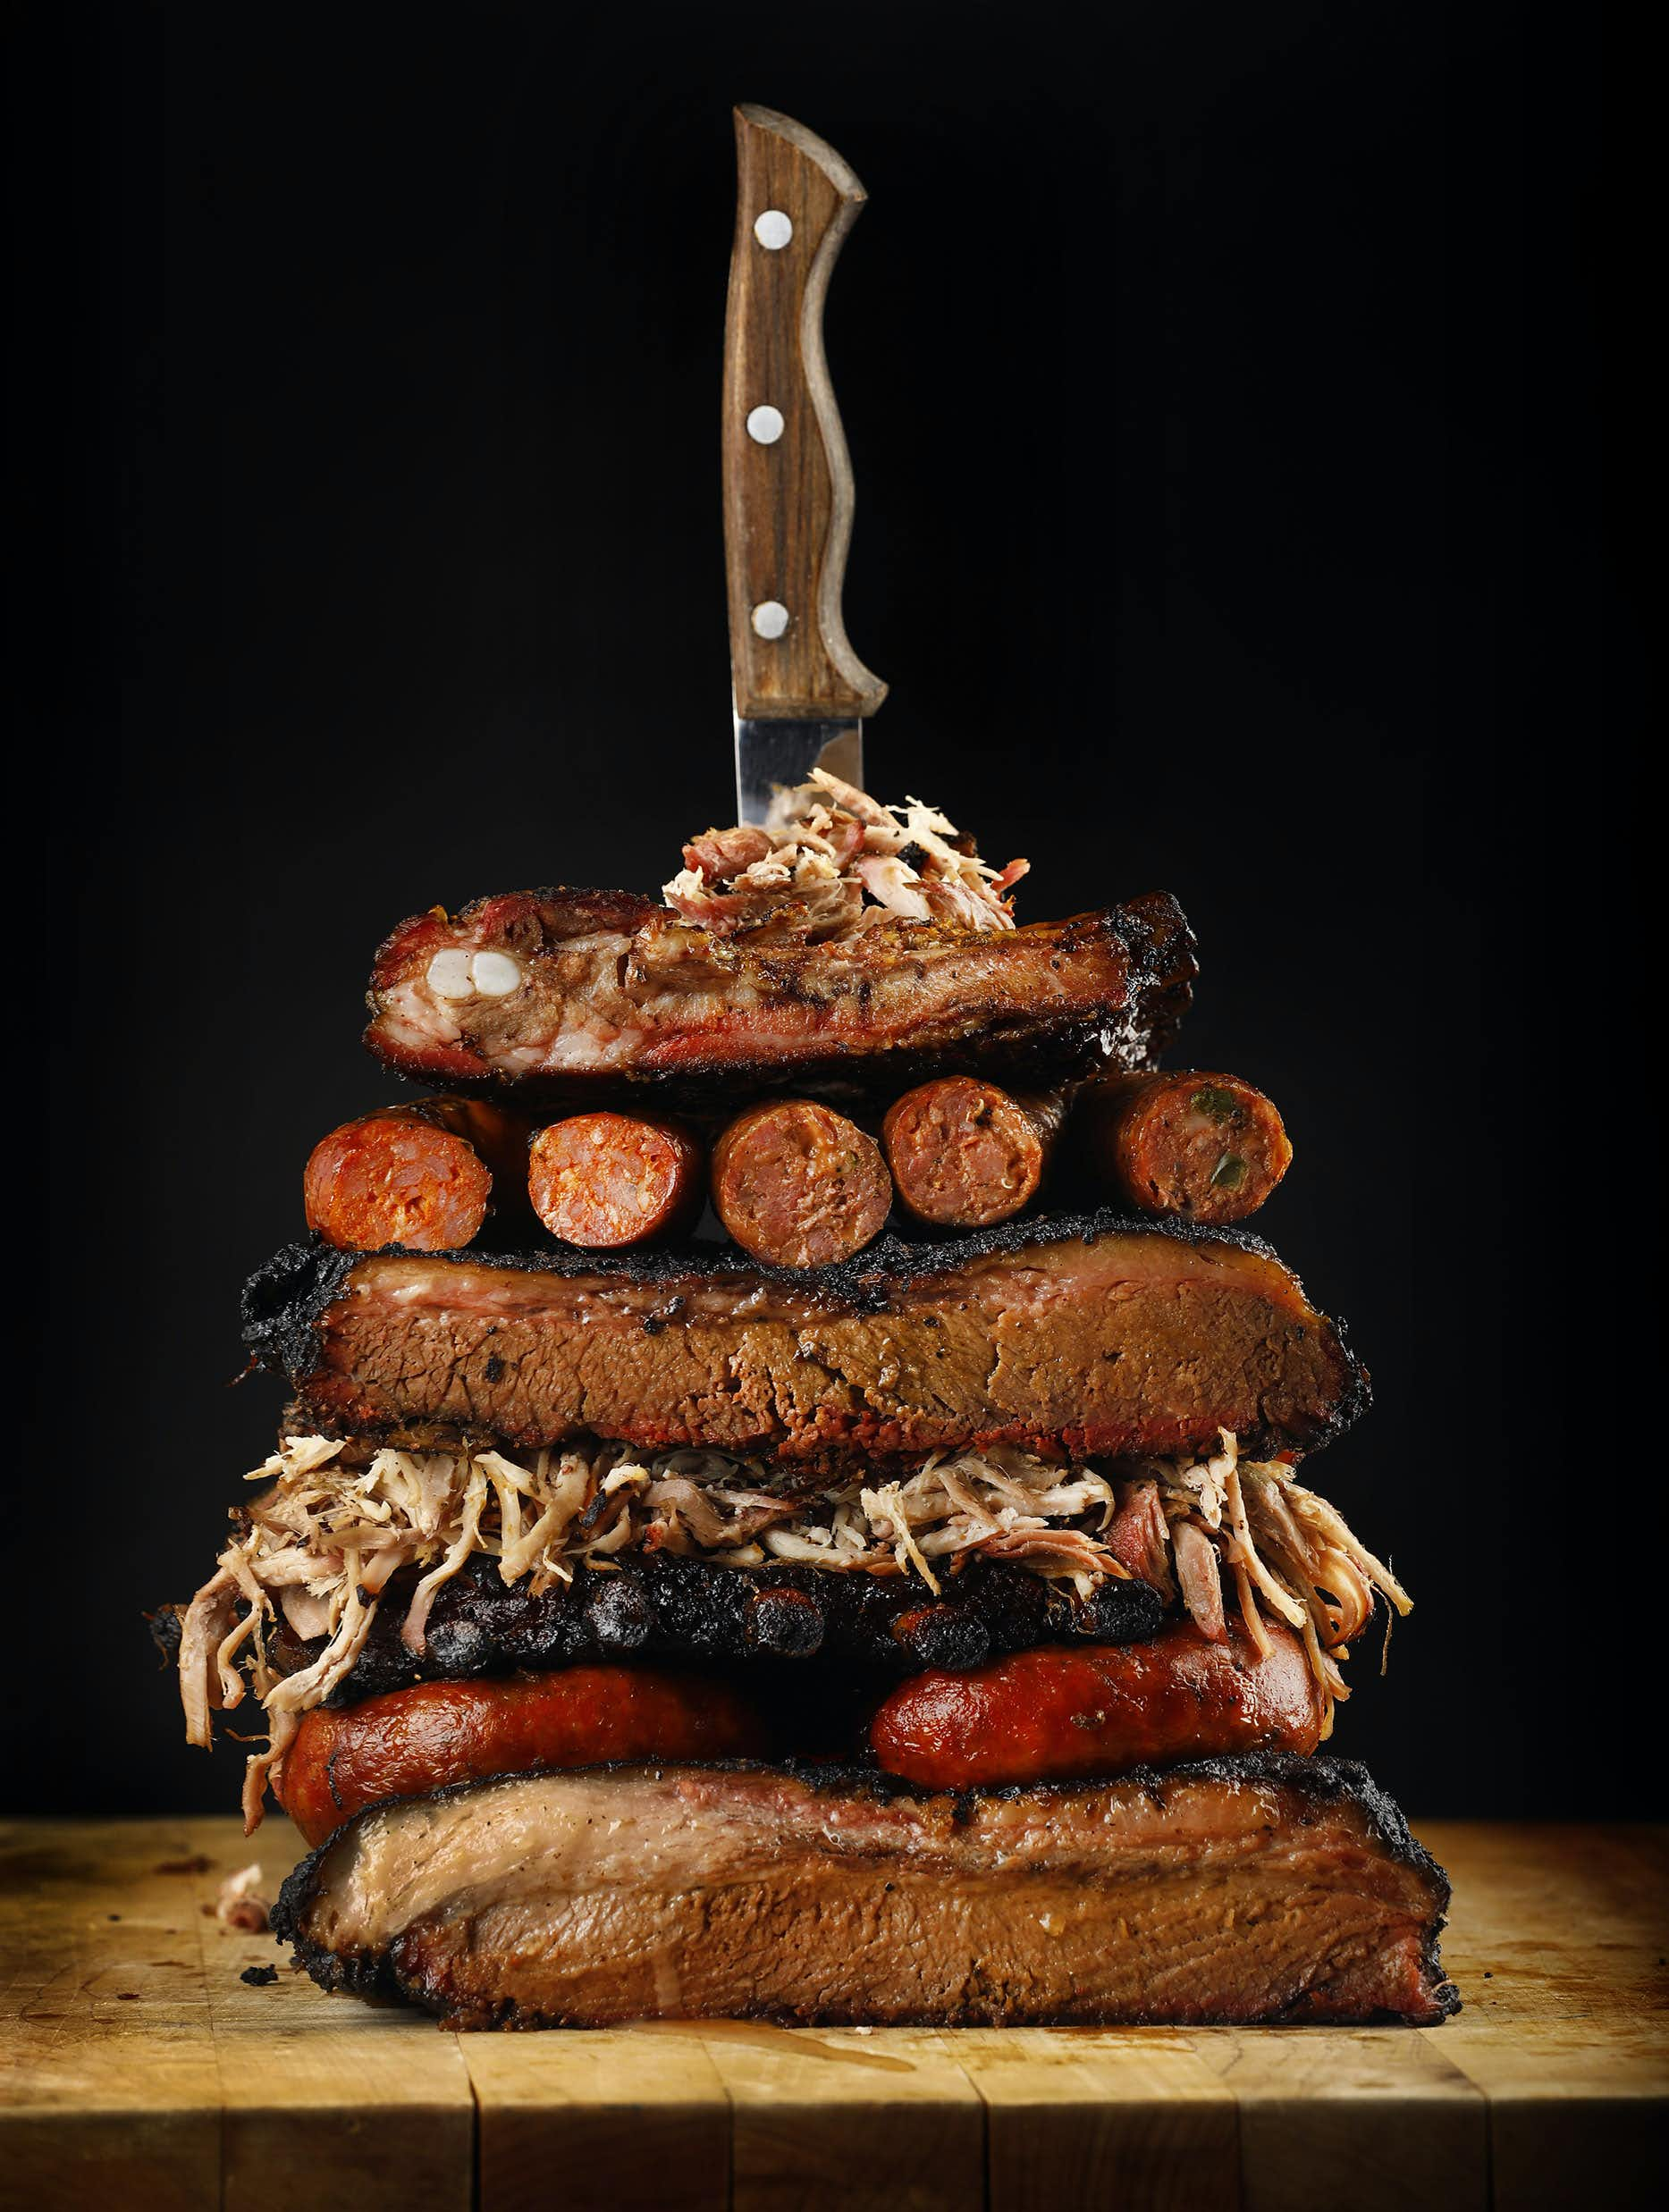 Brisket, ribs, pulled pork and sausage are among the fatty meats that could be staples of the keto diet.(Tom Fox/Staff Photographer)